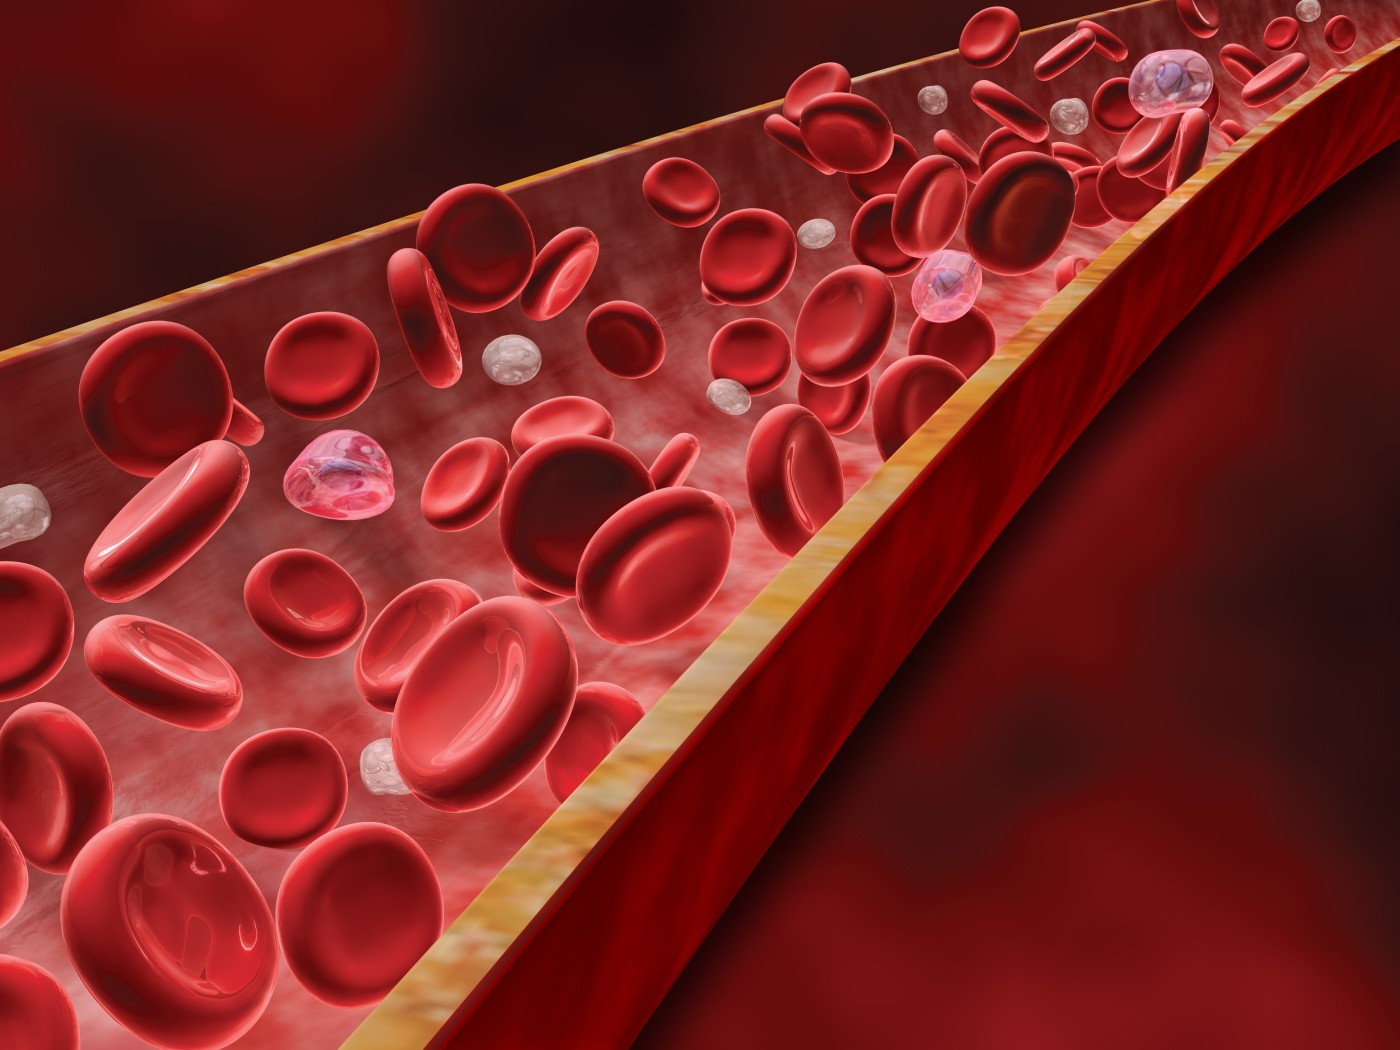 Idiopathic PAH Vasodilator Response Reflects Blood Flow Problems